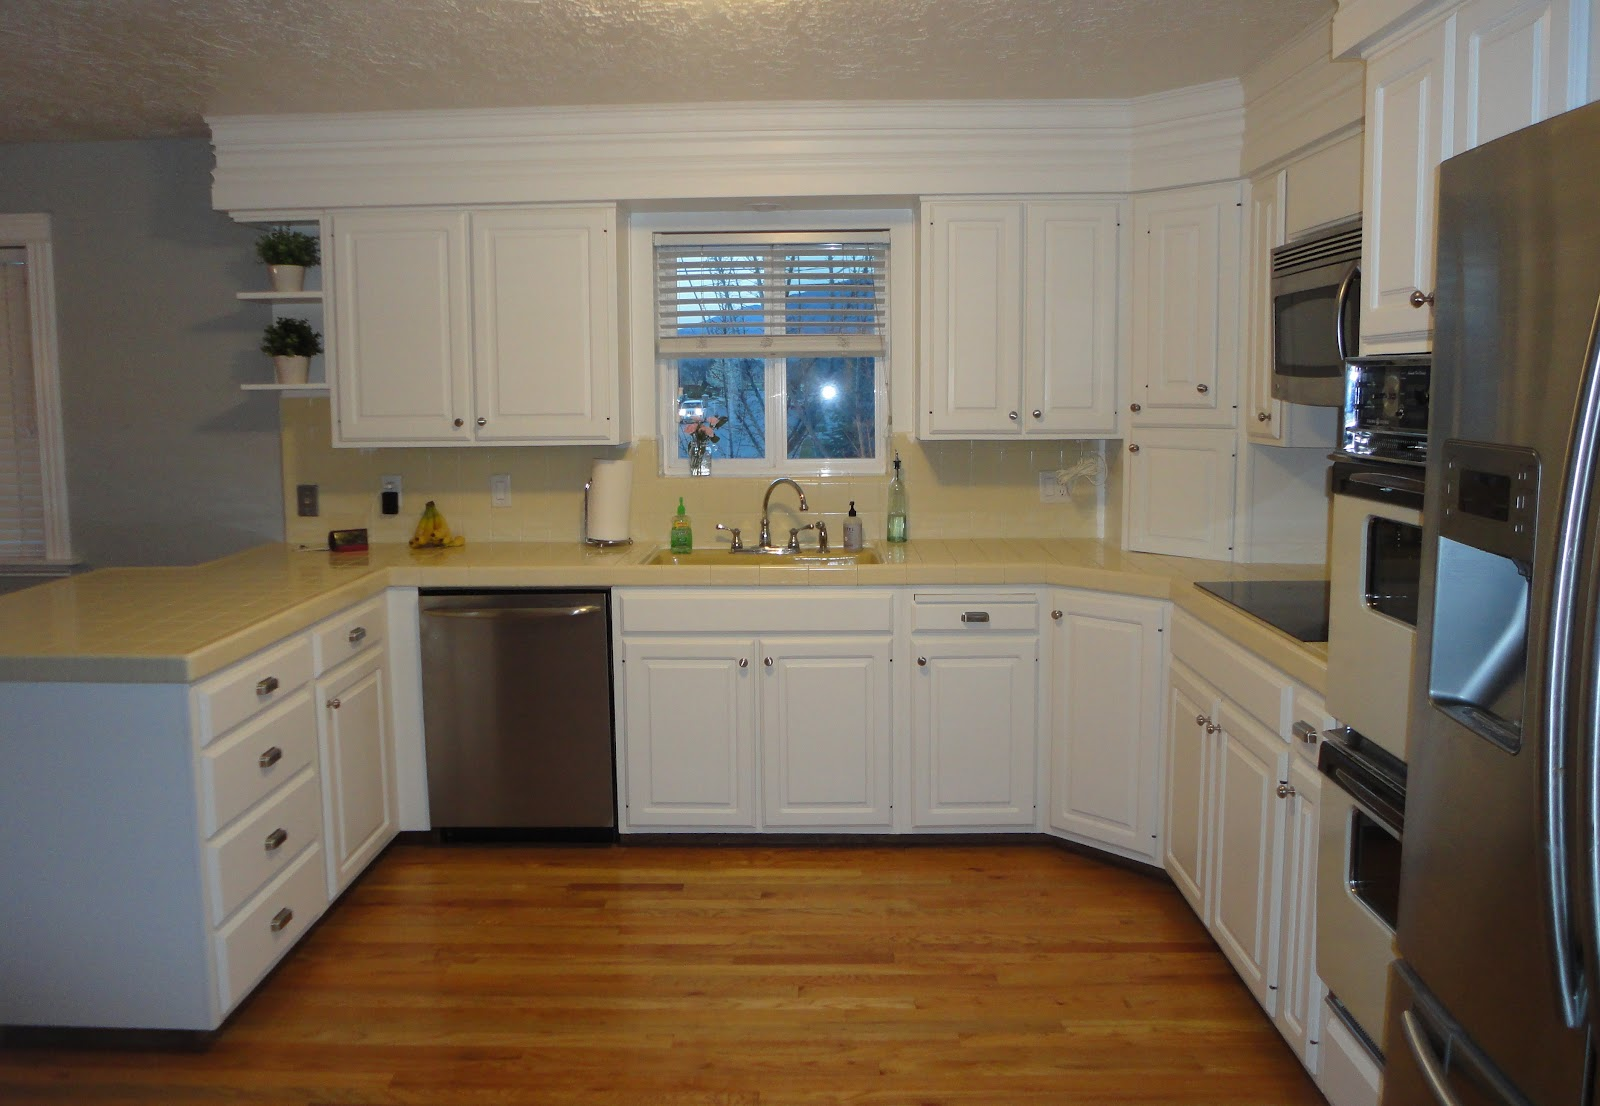 The glamorous Before and after kitchen remodels dark cabinet pics